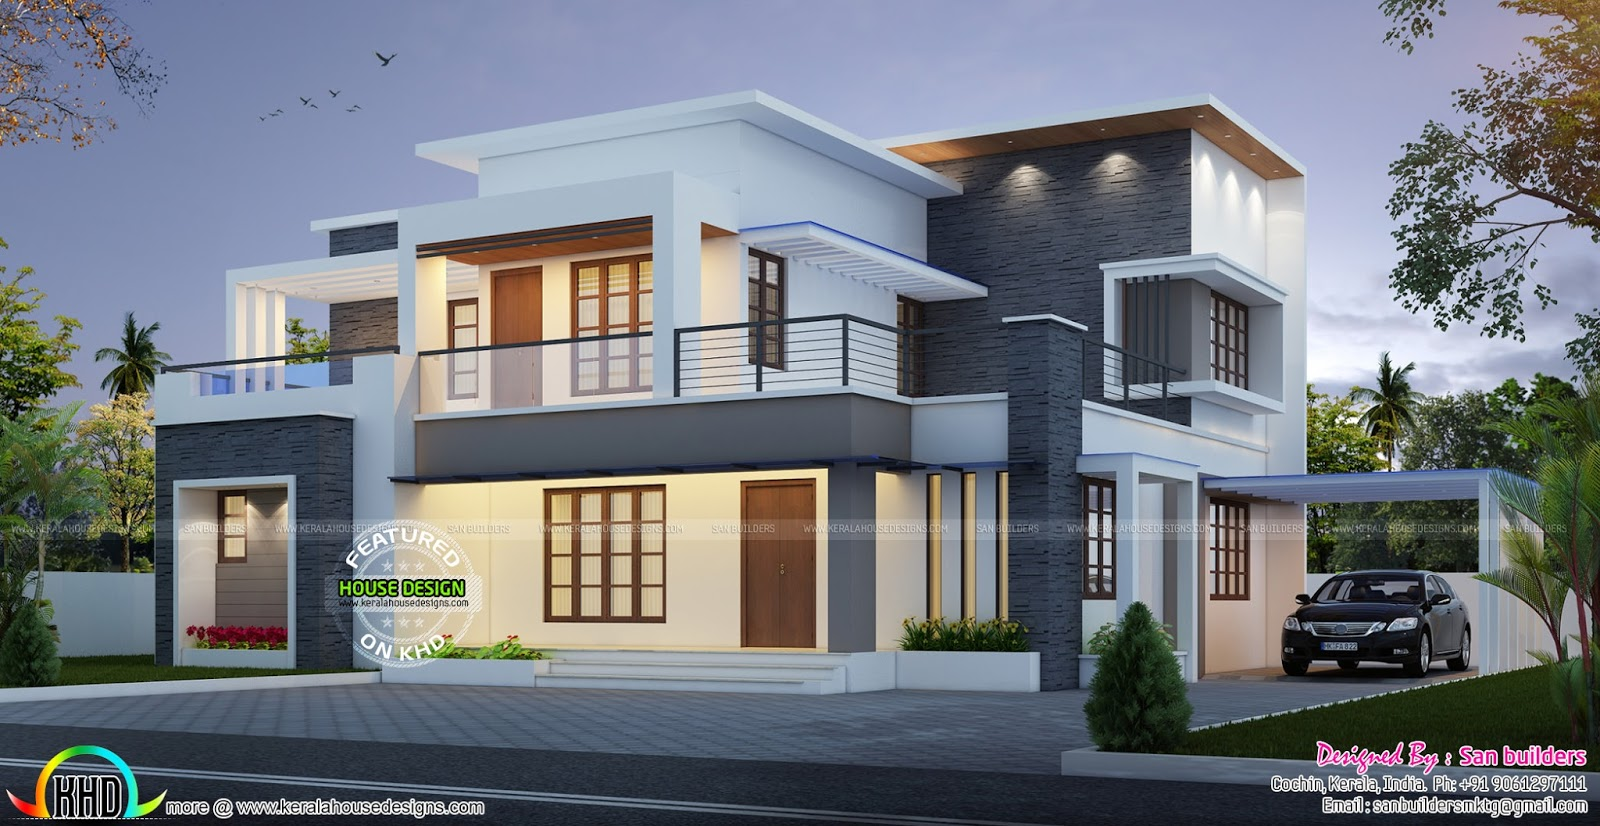 House plan and elevation by san builders kerala home for House plans for builders